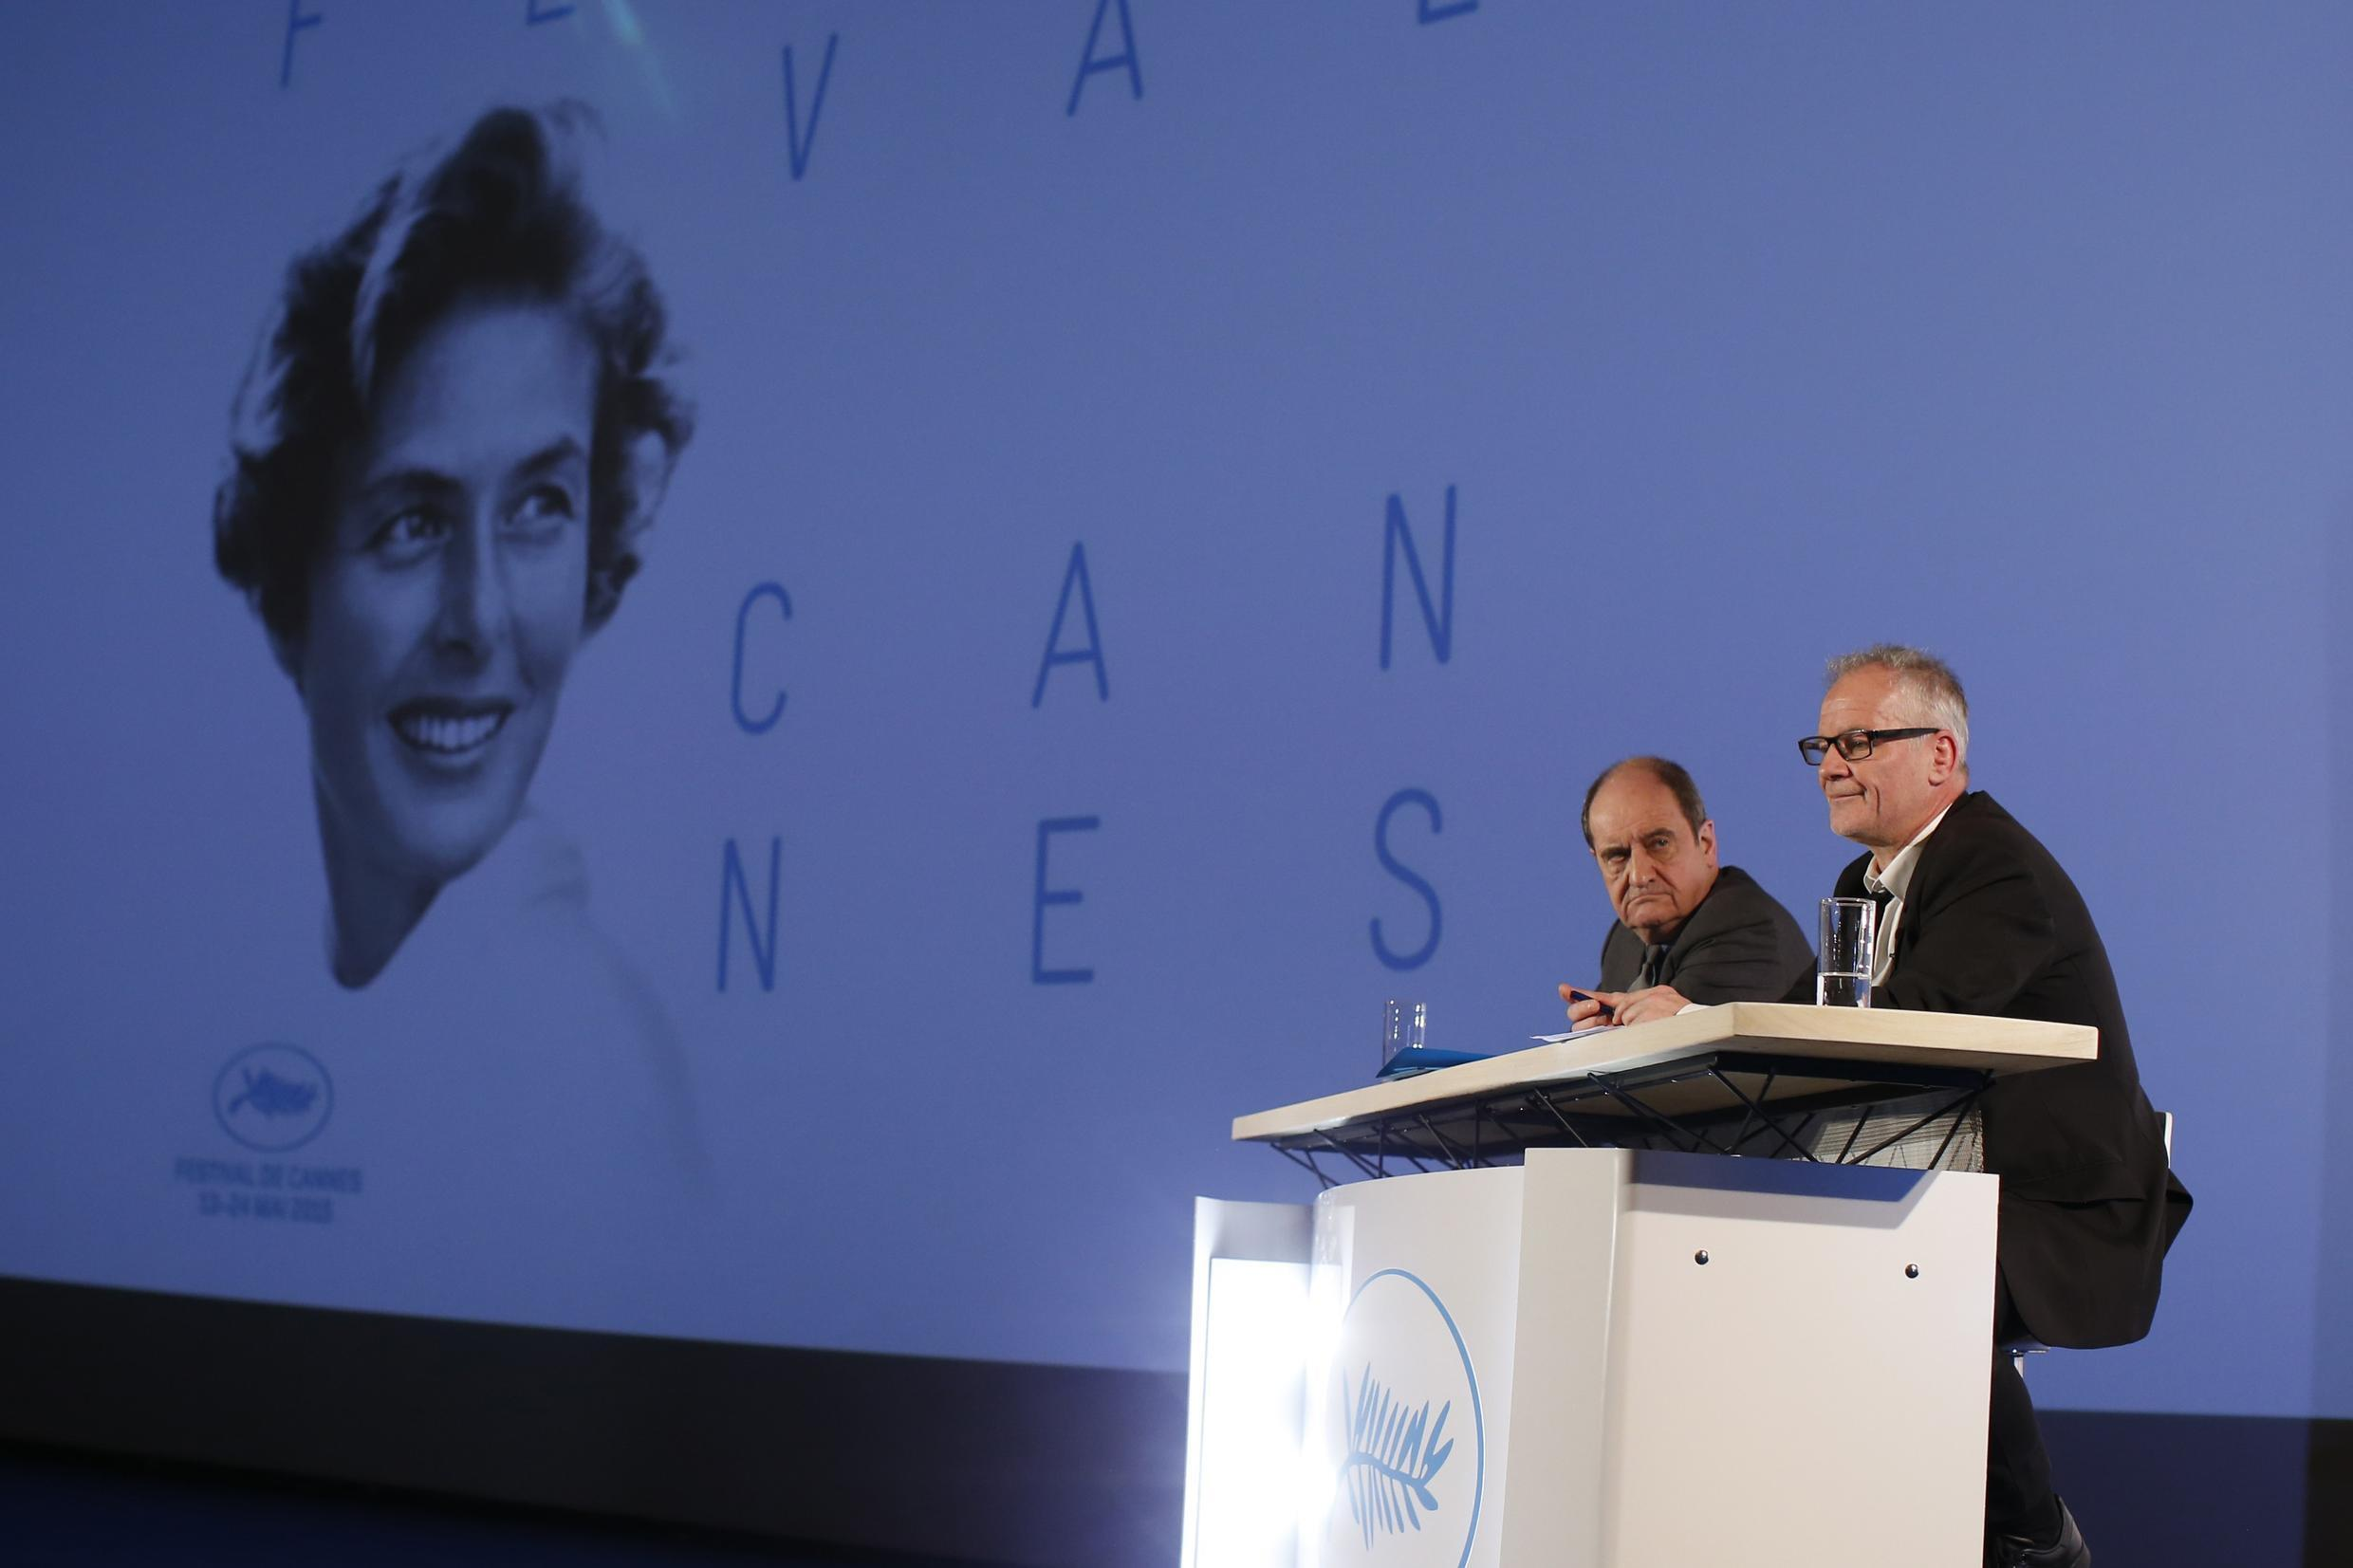 Cannes Film festival general delegate Thierry Fremaux (R) and its president Pierre Lescure (L) announce the competing films at the 68th Cannes Film Festival,  Paris, 16 April 2015.